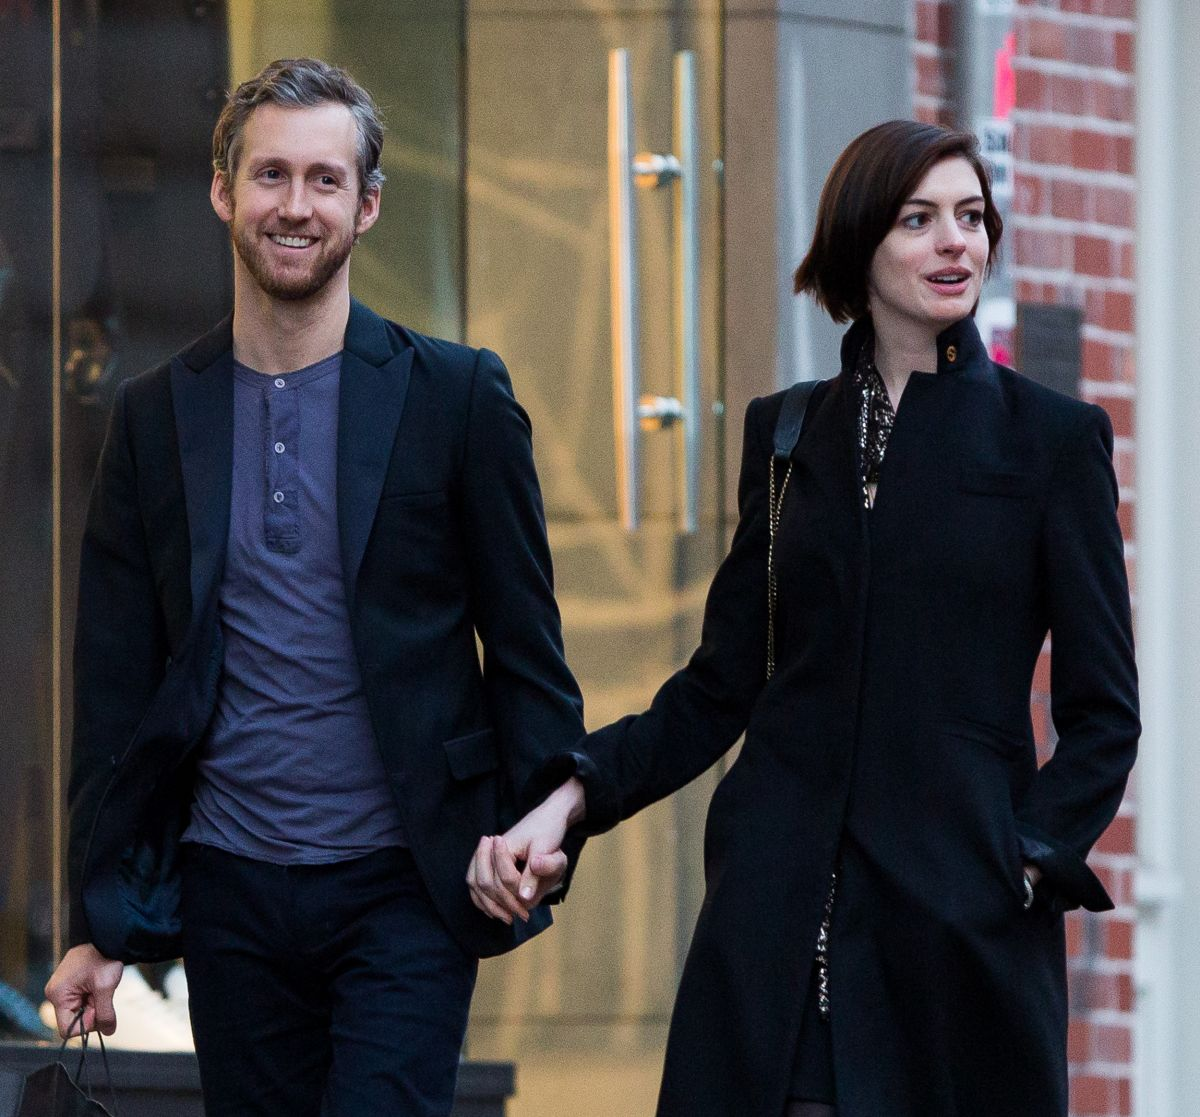 Anne Hathaway Spouse: Anne Hathaway With Her Husband Adam Shulman Out In New